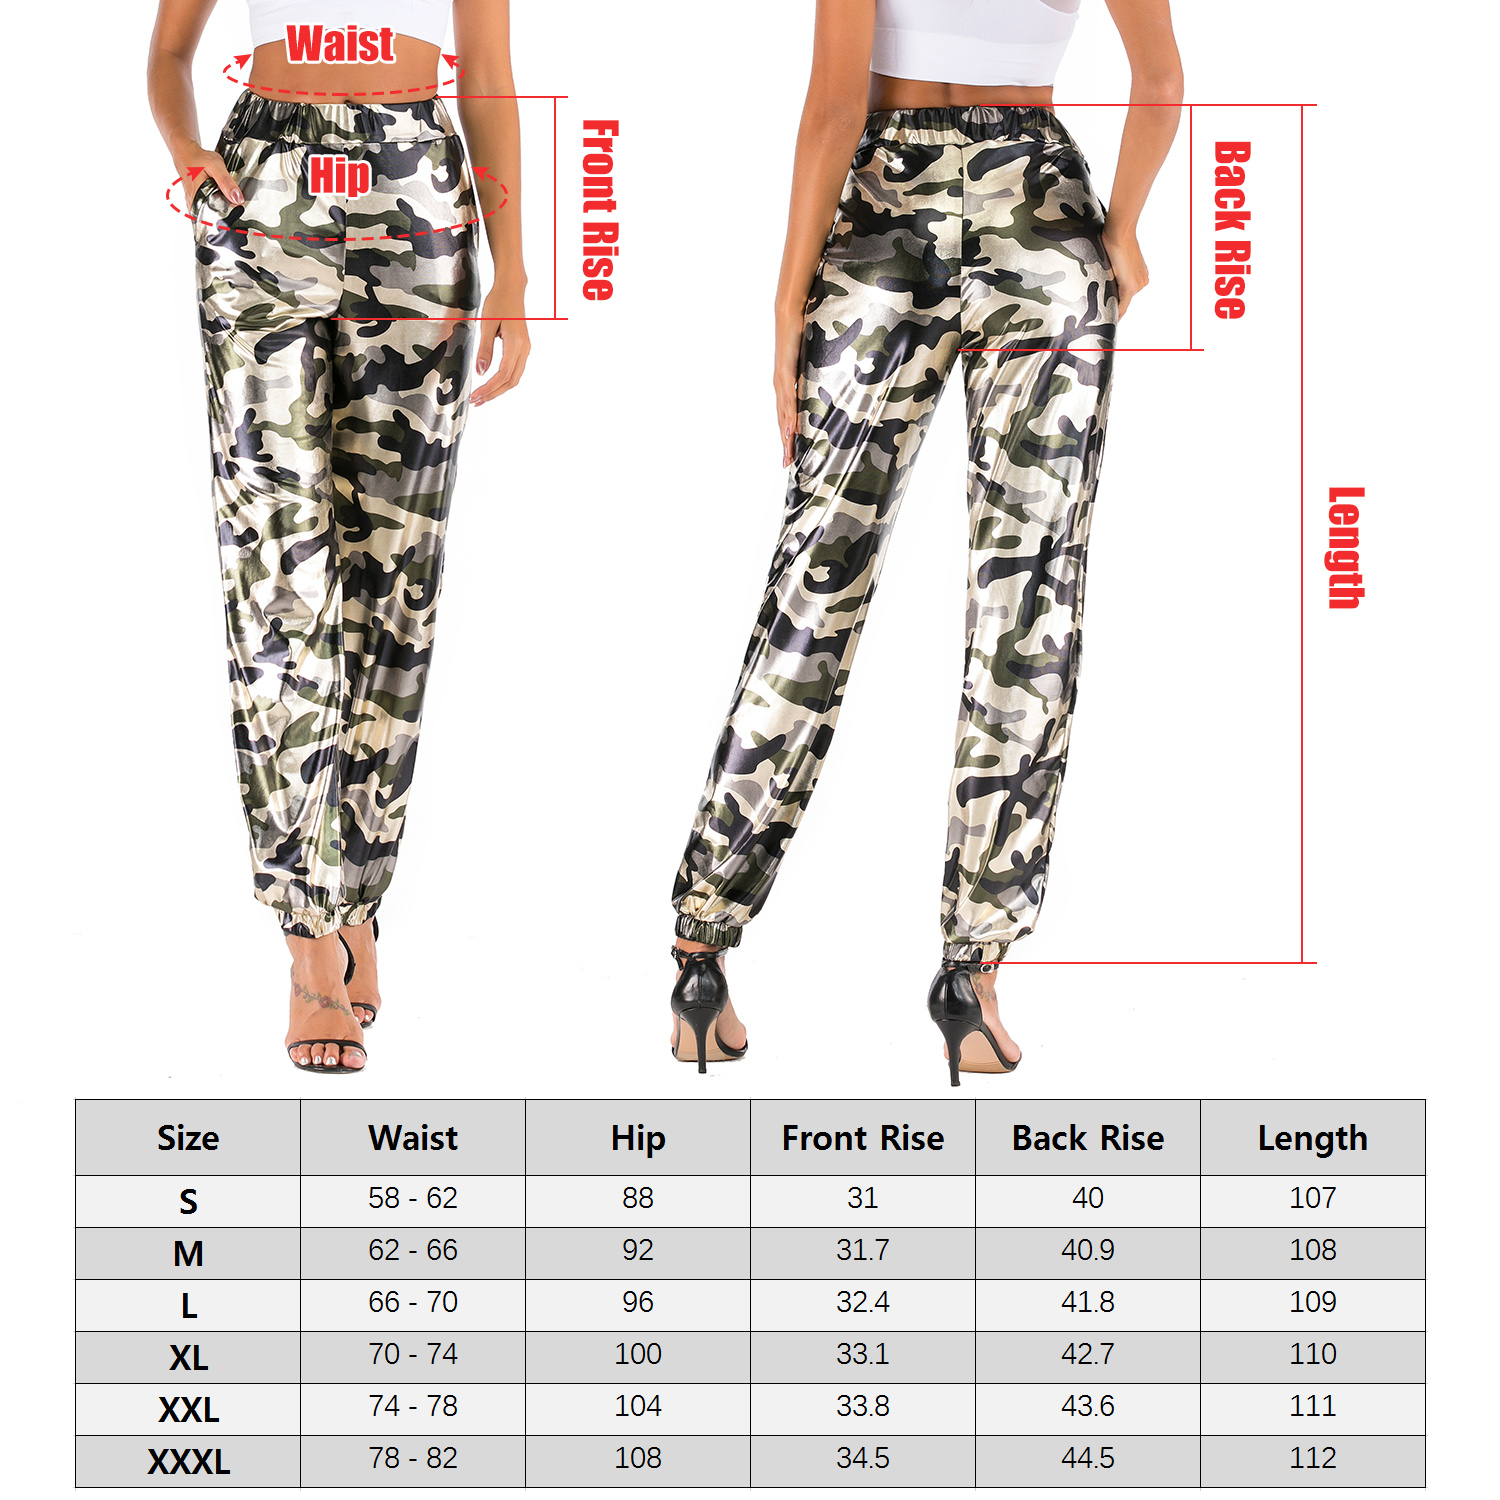 Fashion Women Pants High Waist Sports Casual Jogger Pants Sweatpants Hip Hop Trousers Streetwear with Elastic Cuffs Plus Size 11